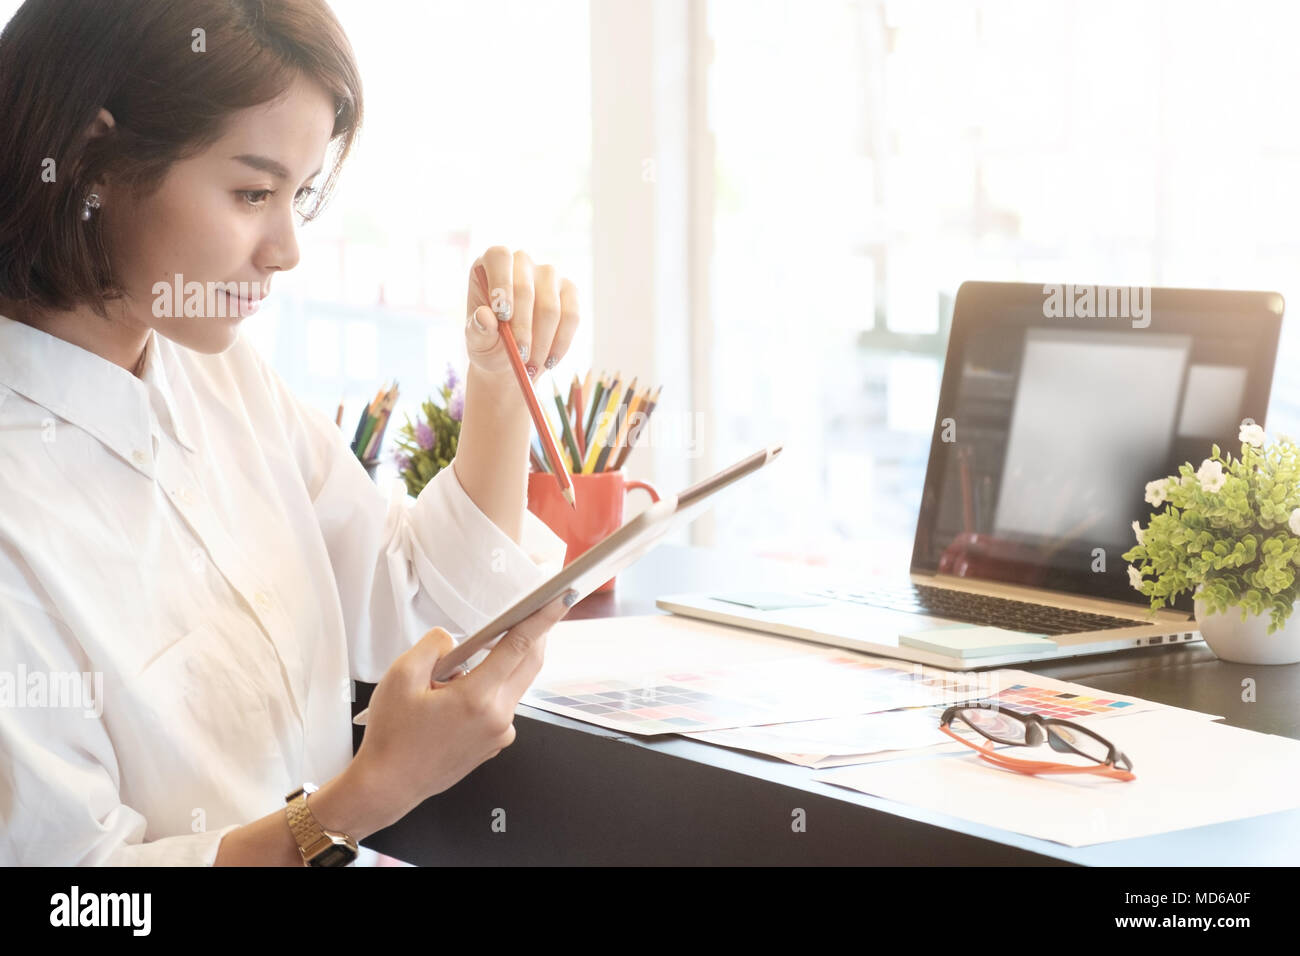 Cropped shot of Graphic designer woman creative on artist workplace. Stock Photo